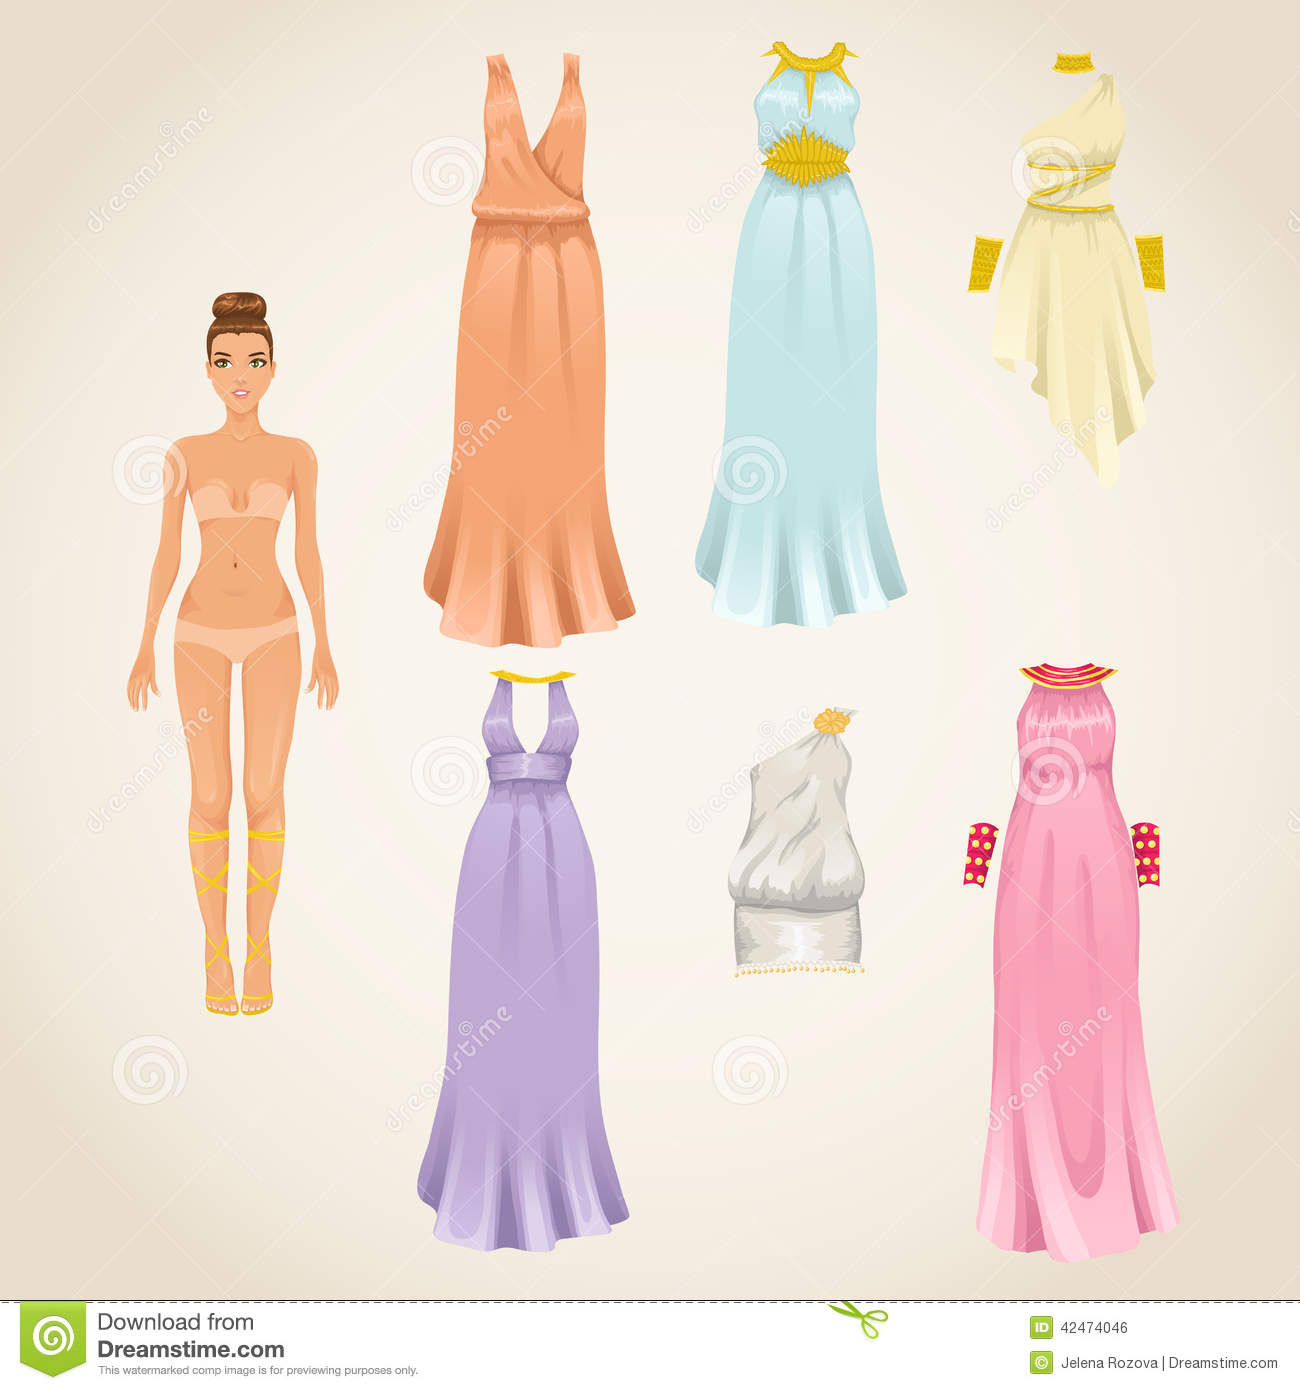 Dress Up Doll With Greek Dresses Stock Vector - Illustration